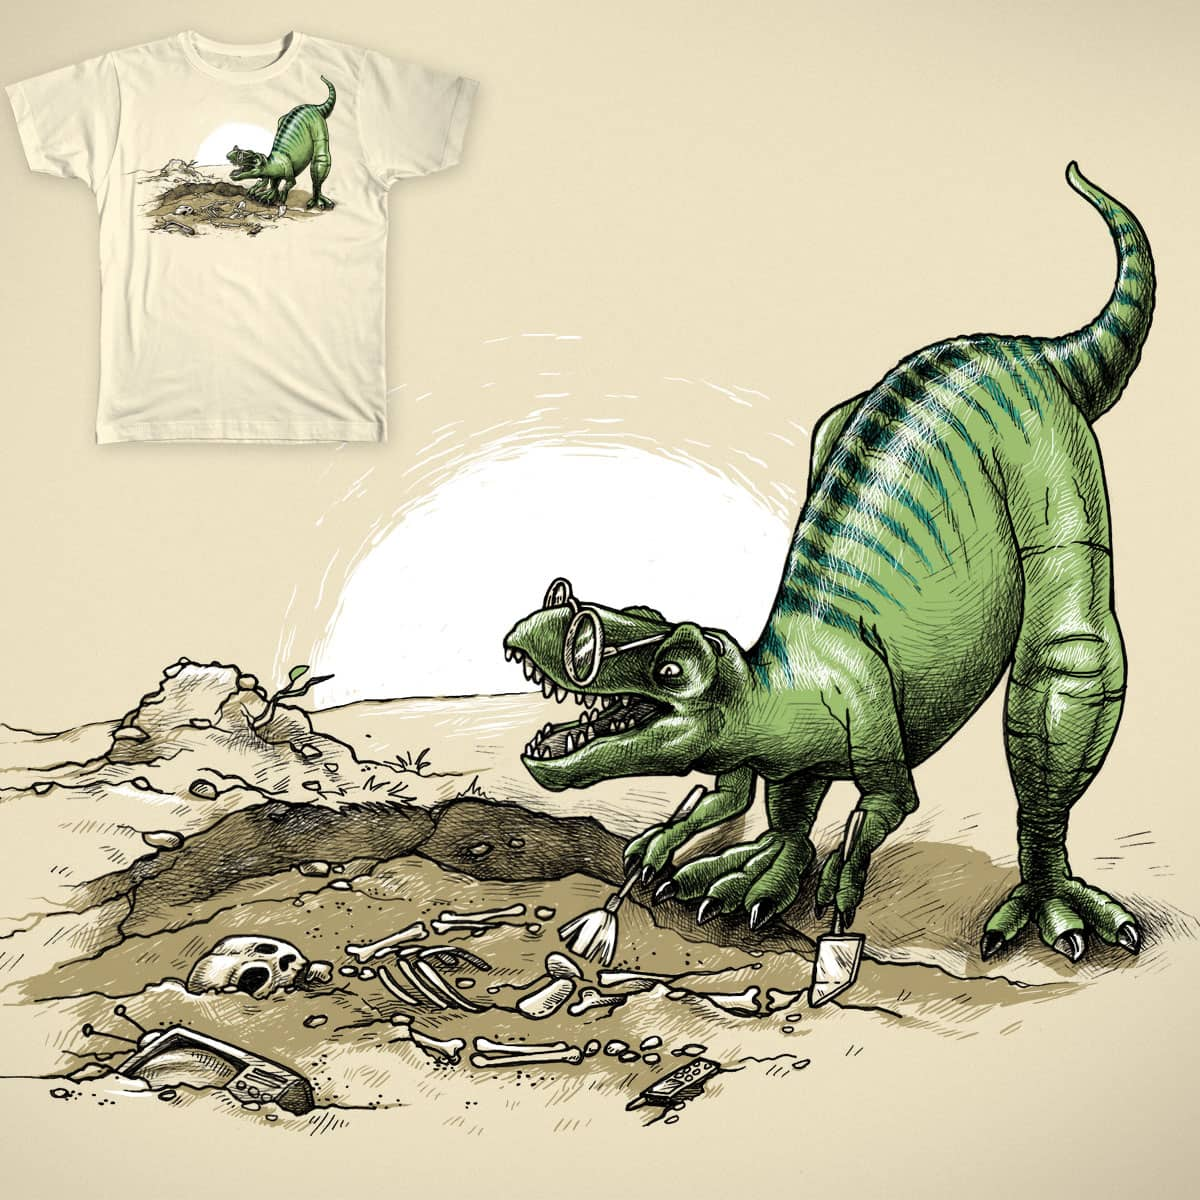 Archeologist by AnnieCarter on Threadless